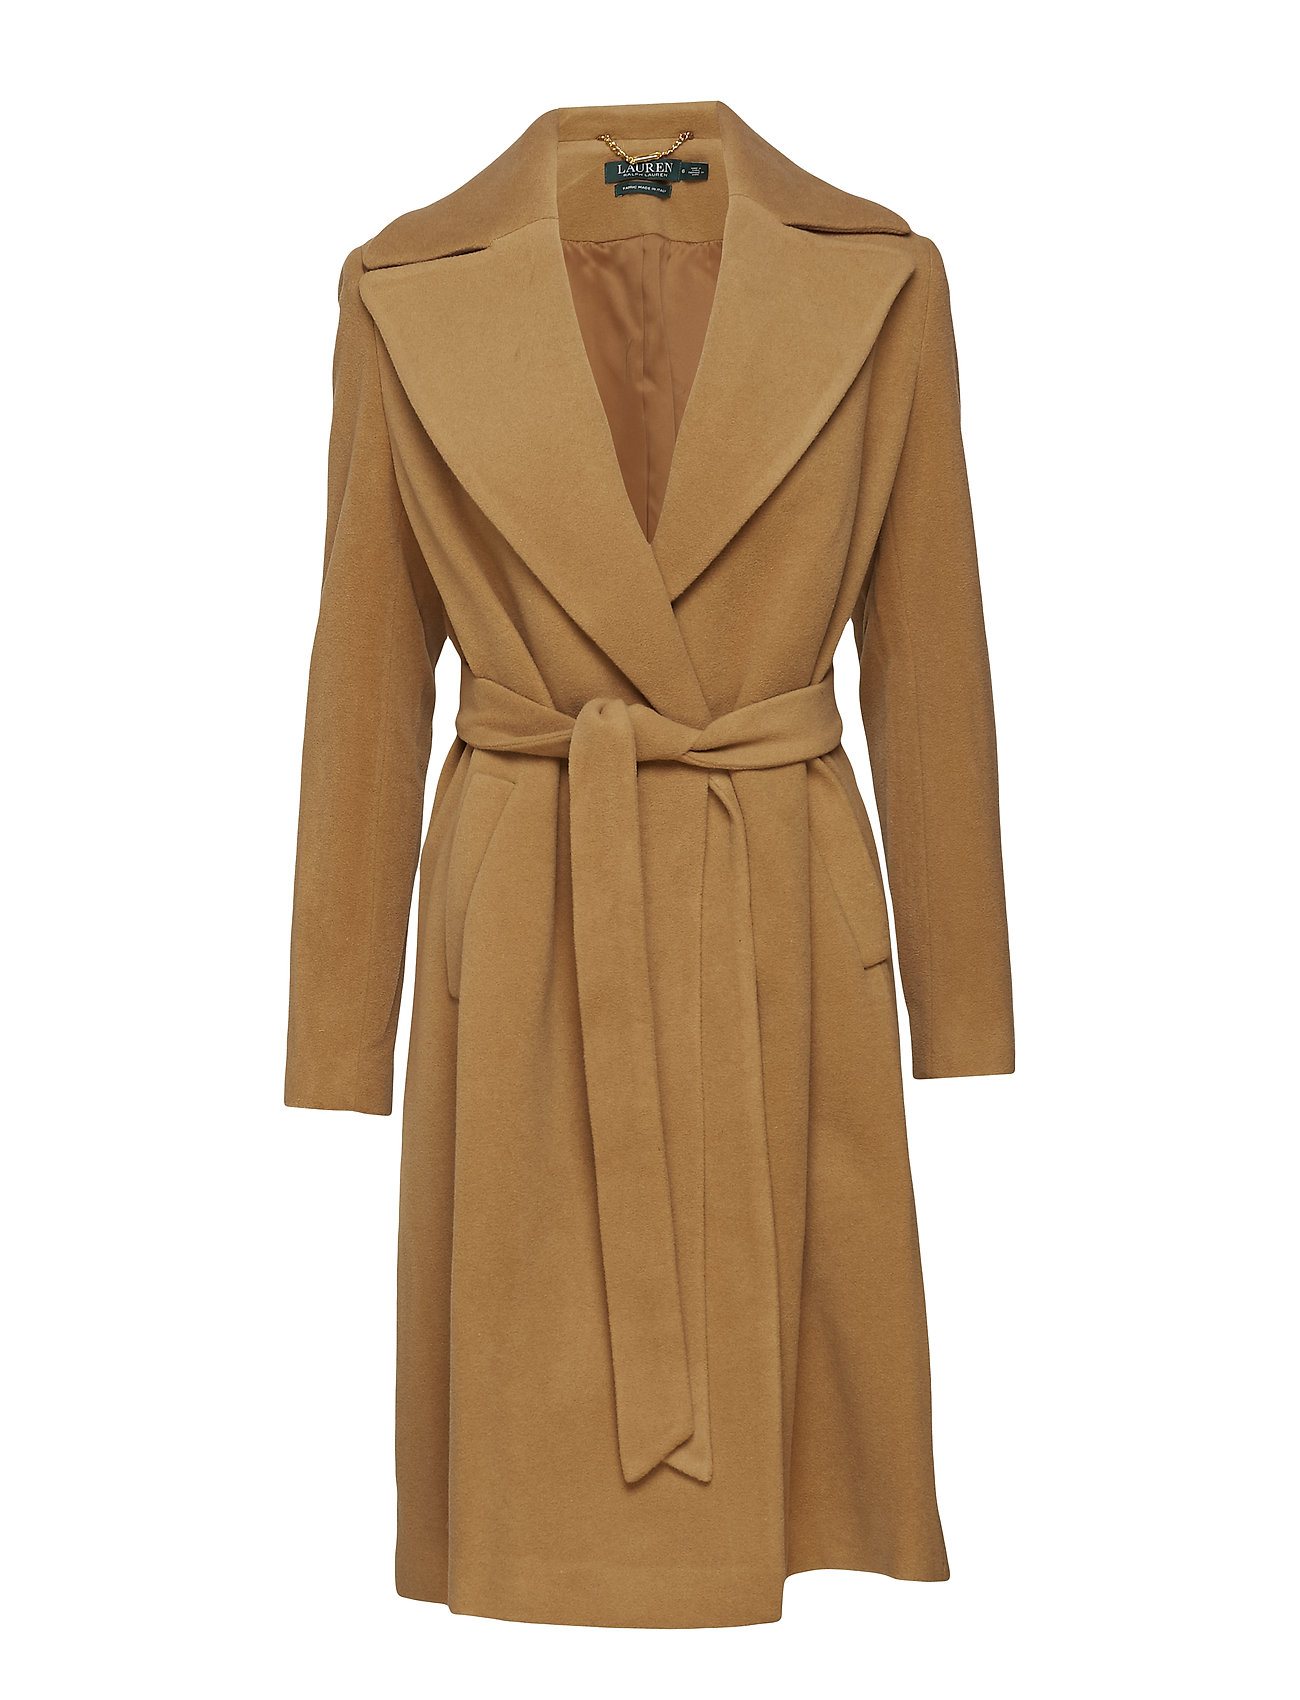 59f536cb09b Wool Cashmere Blend-solid Wool Wrap (Vicuna) (£167.50) - Lauren ...